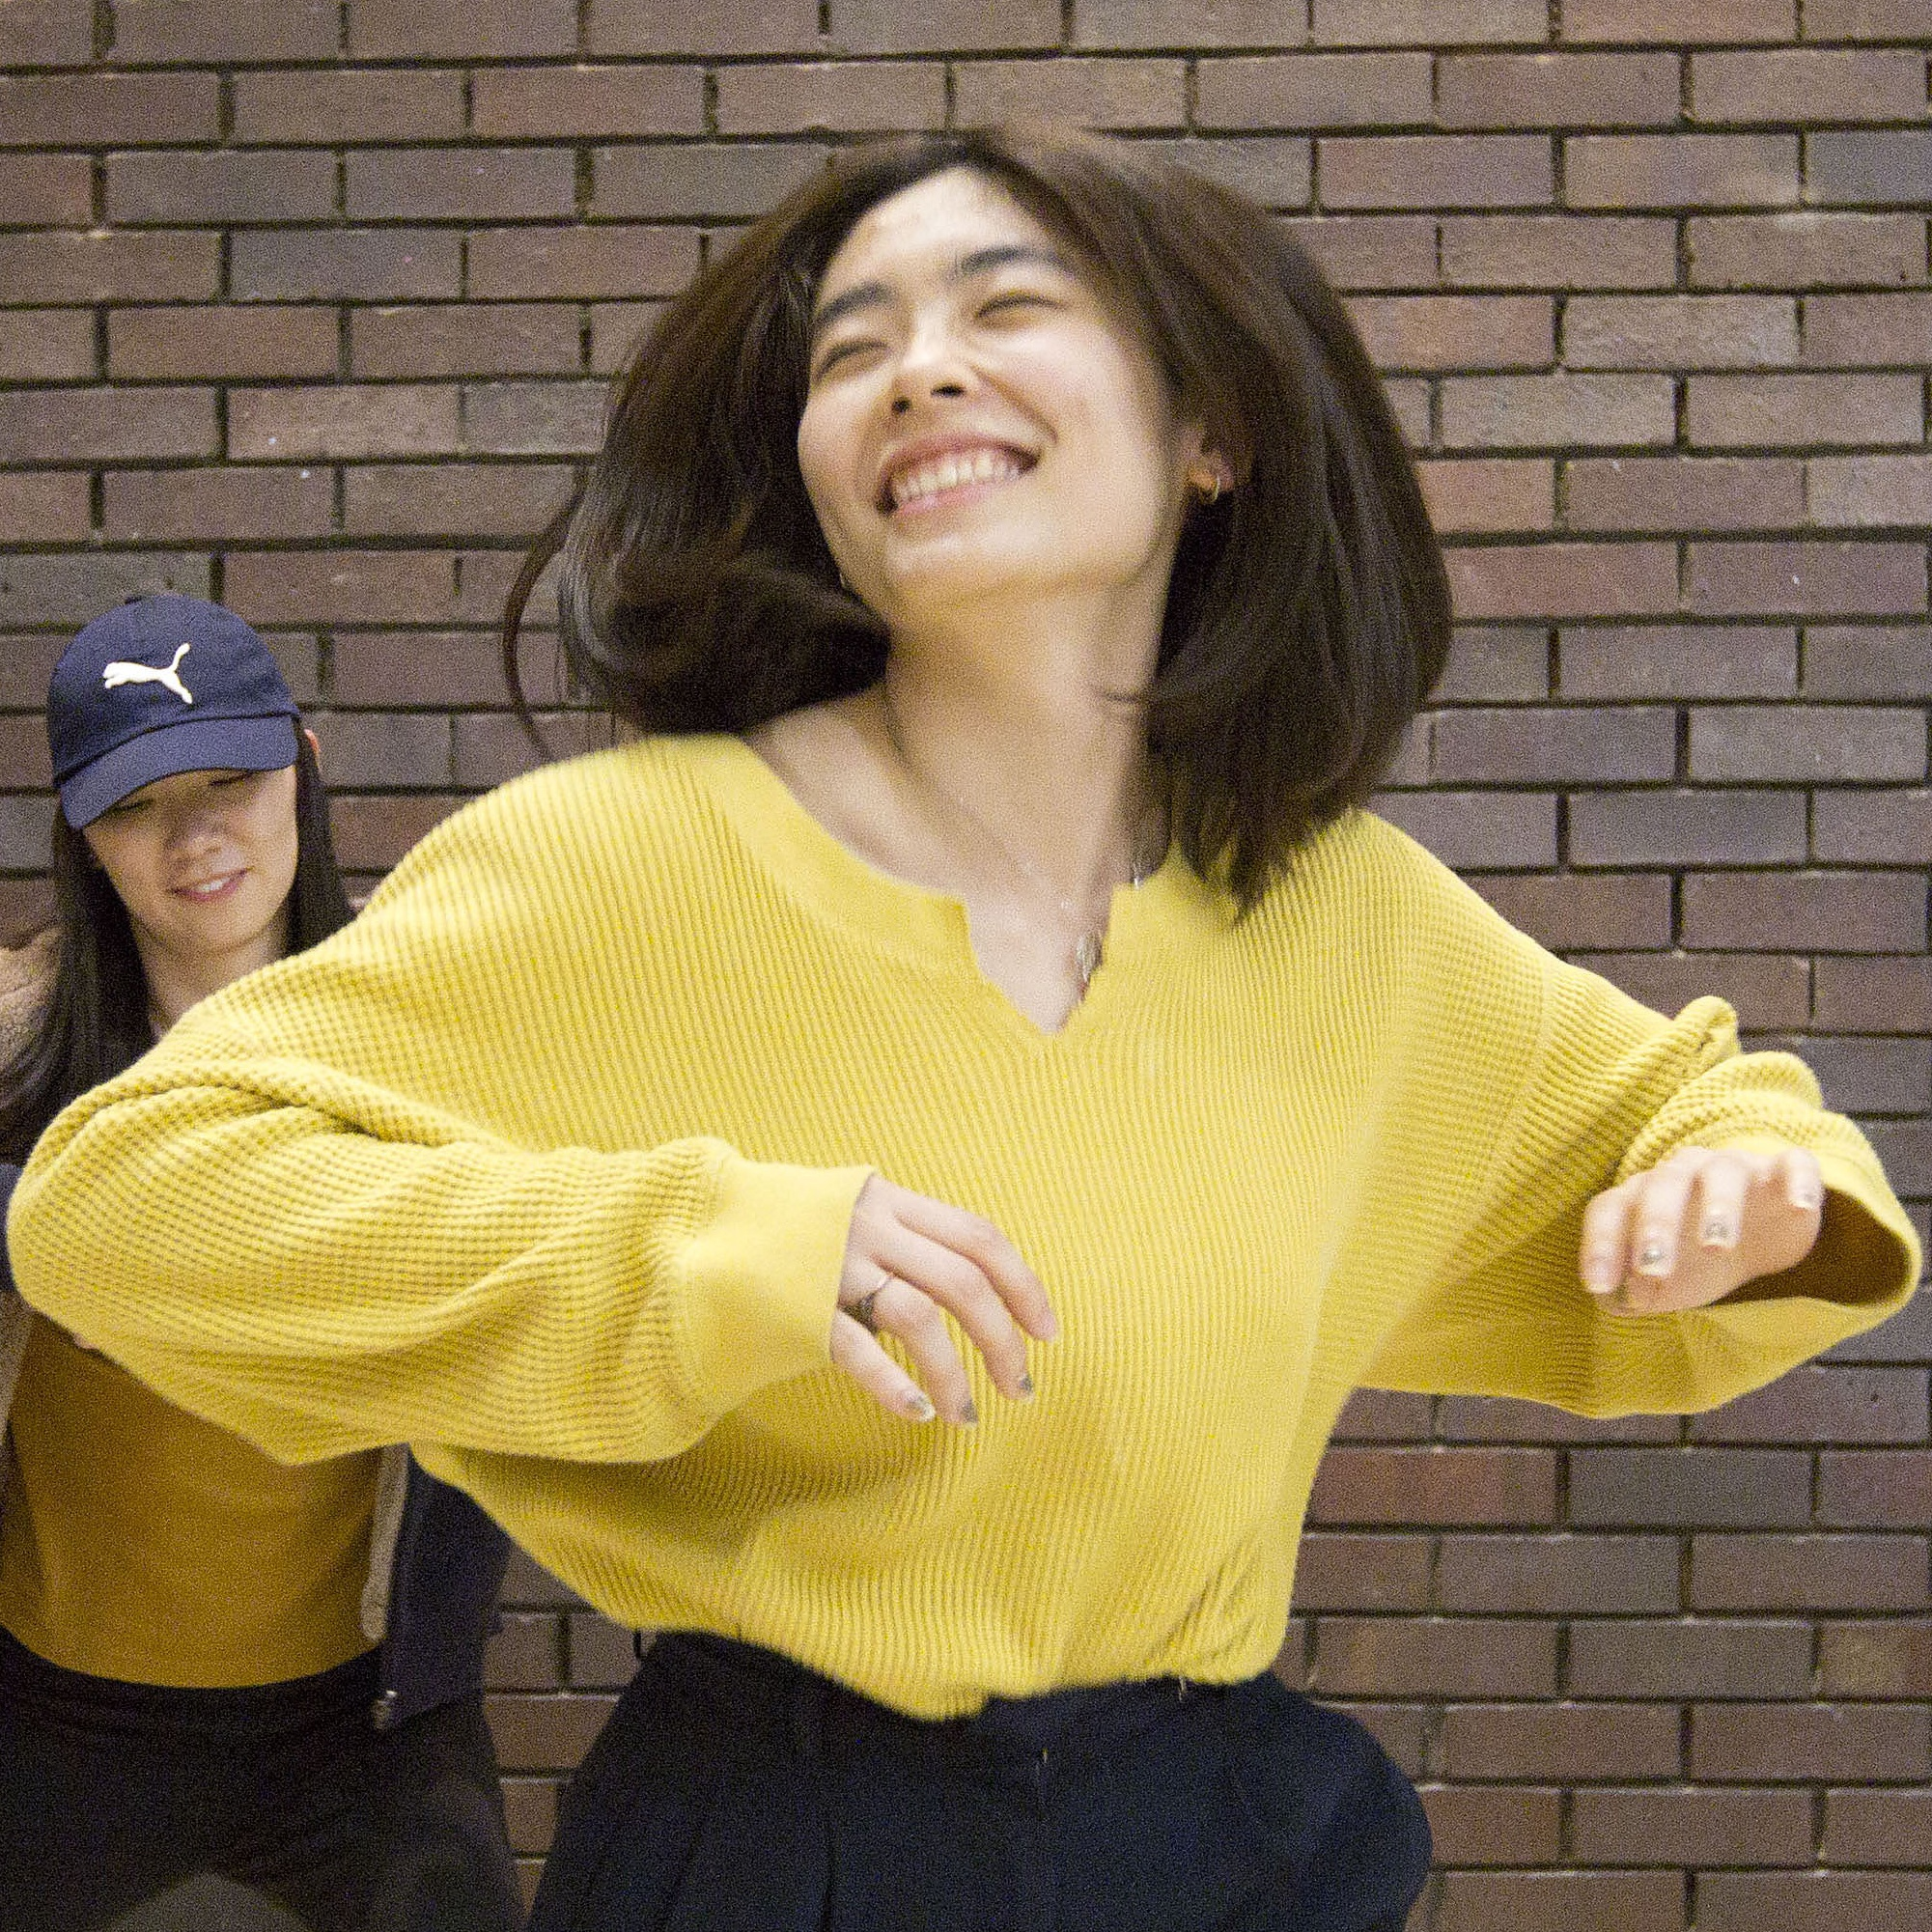 Colour photo of a dancer from the wait up, wearing a yellow top